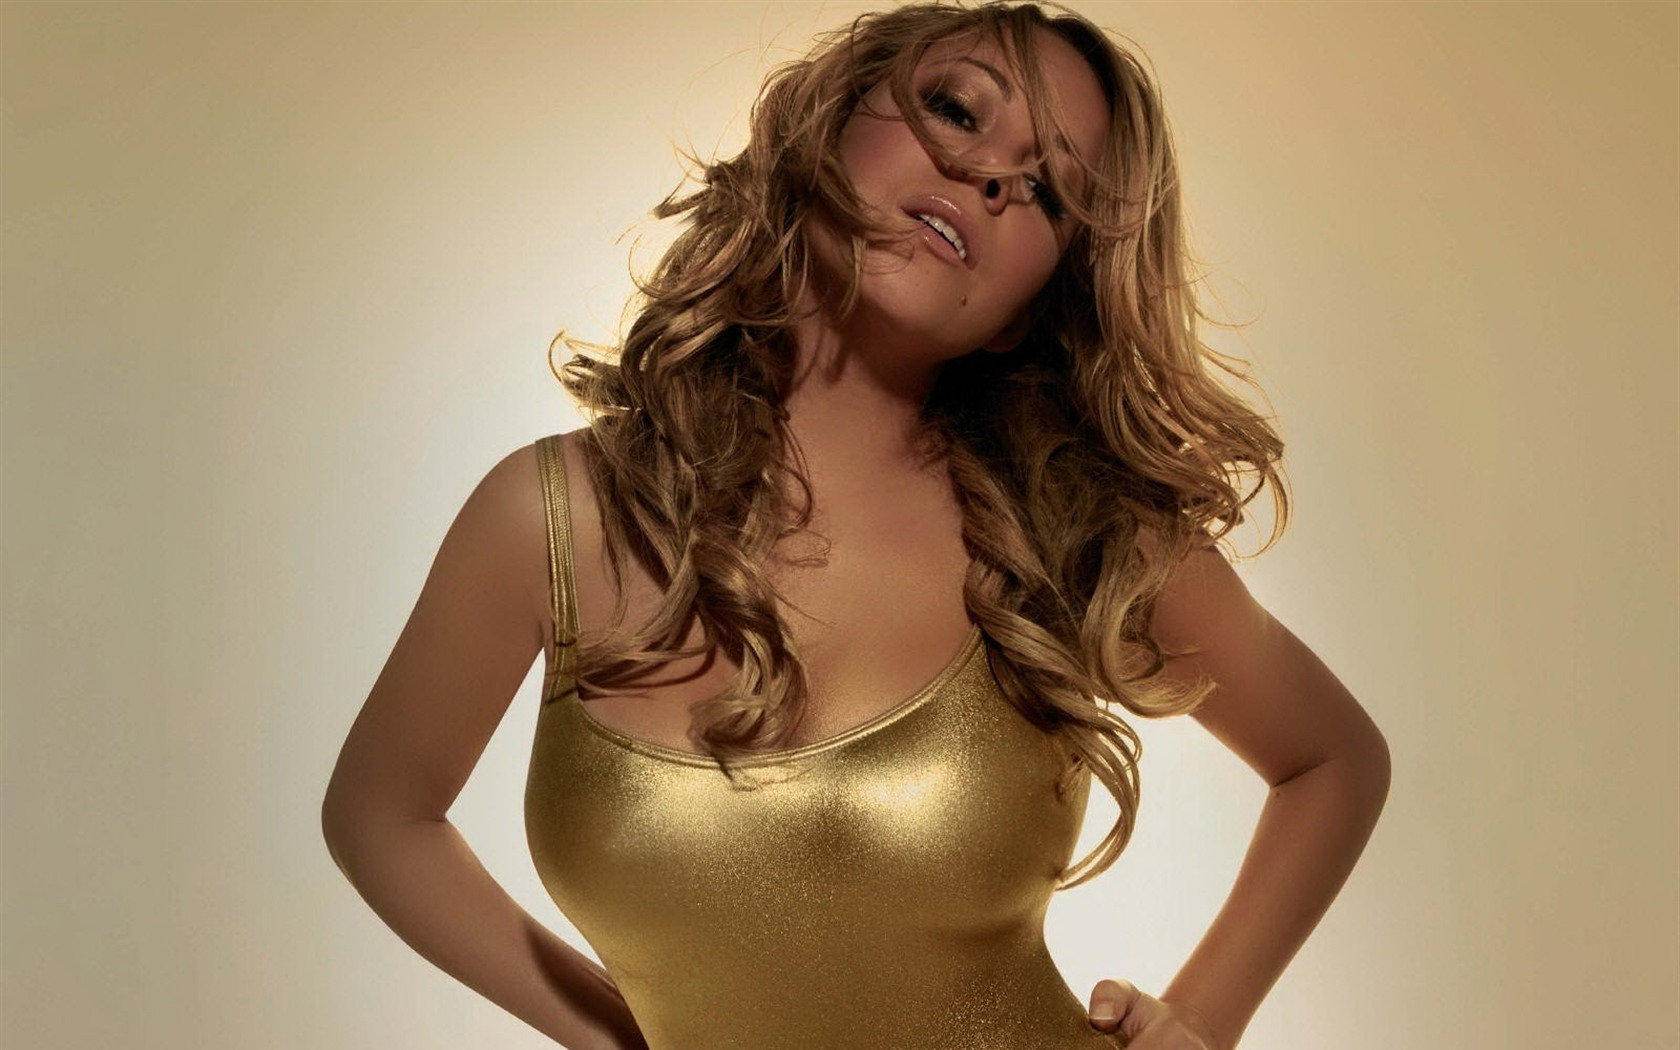 Mariah Carey #038 - 1680x1050 Wallpapers Pictures Photos Images